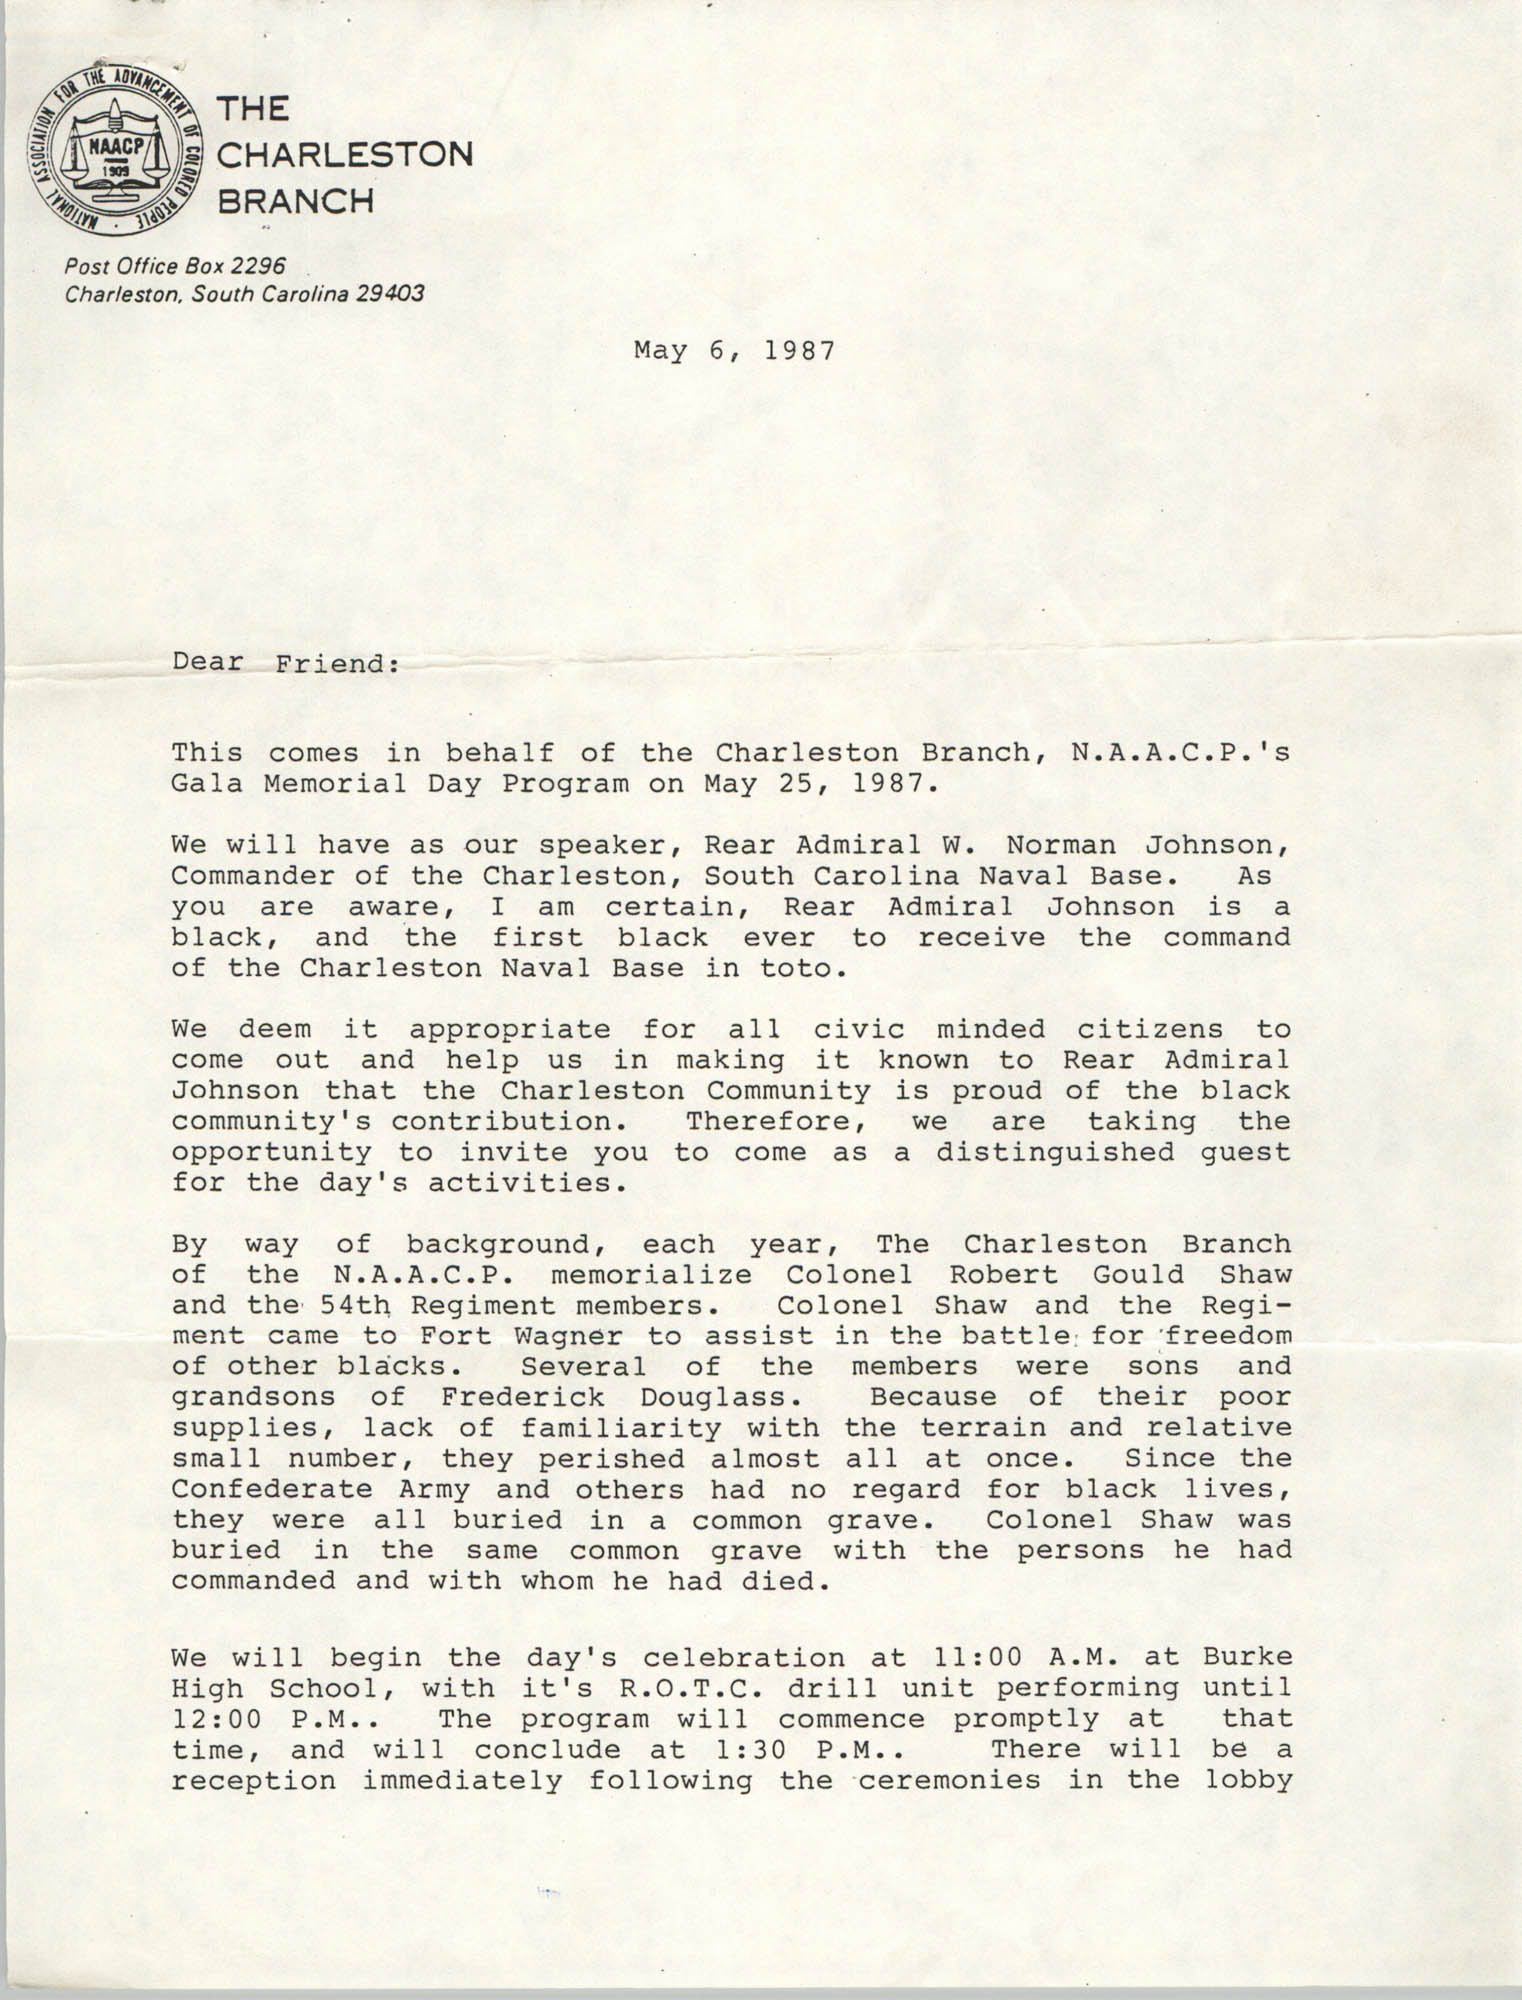 Response from Captain M.C. McKearn, Letter from William A. Glover to Friend, May 6, 1987